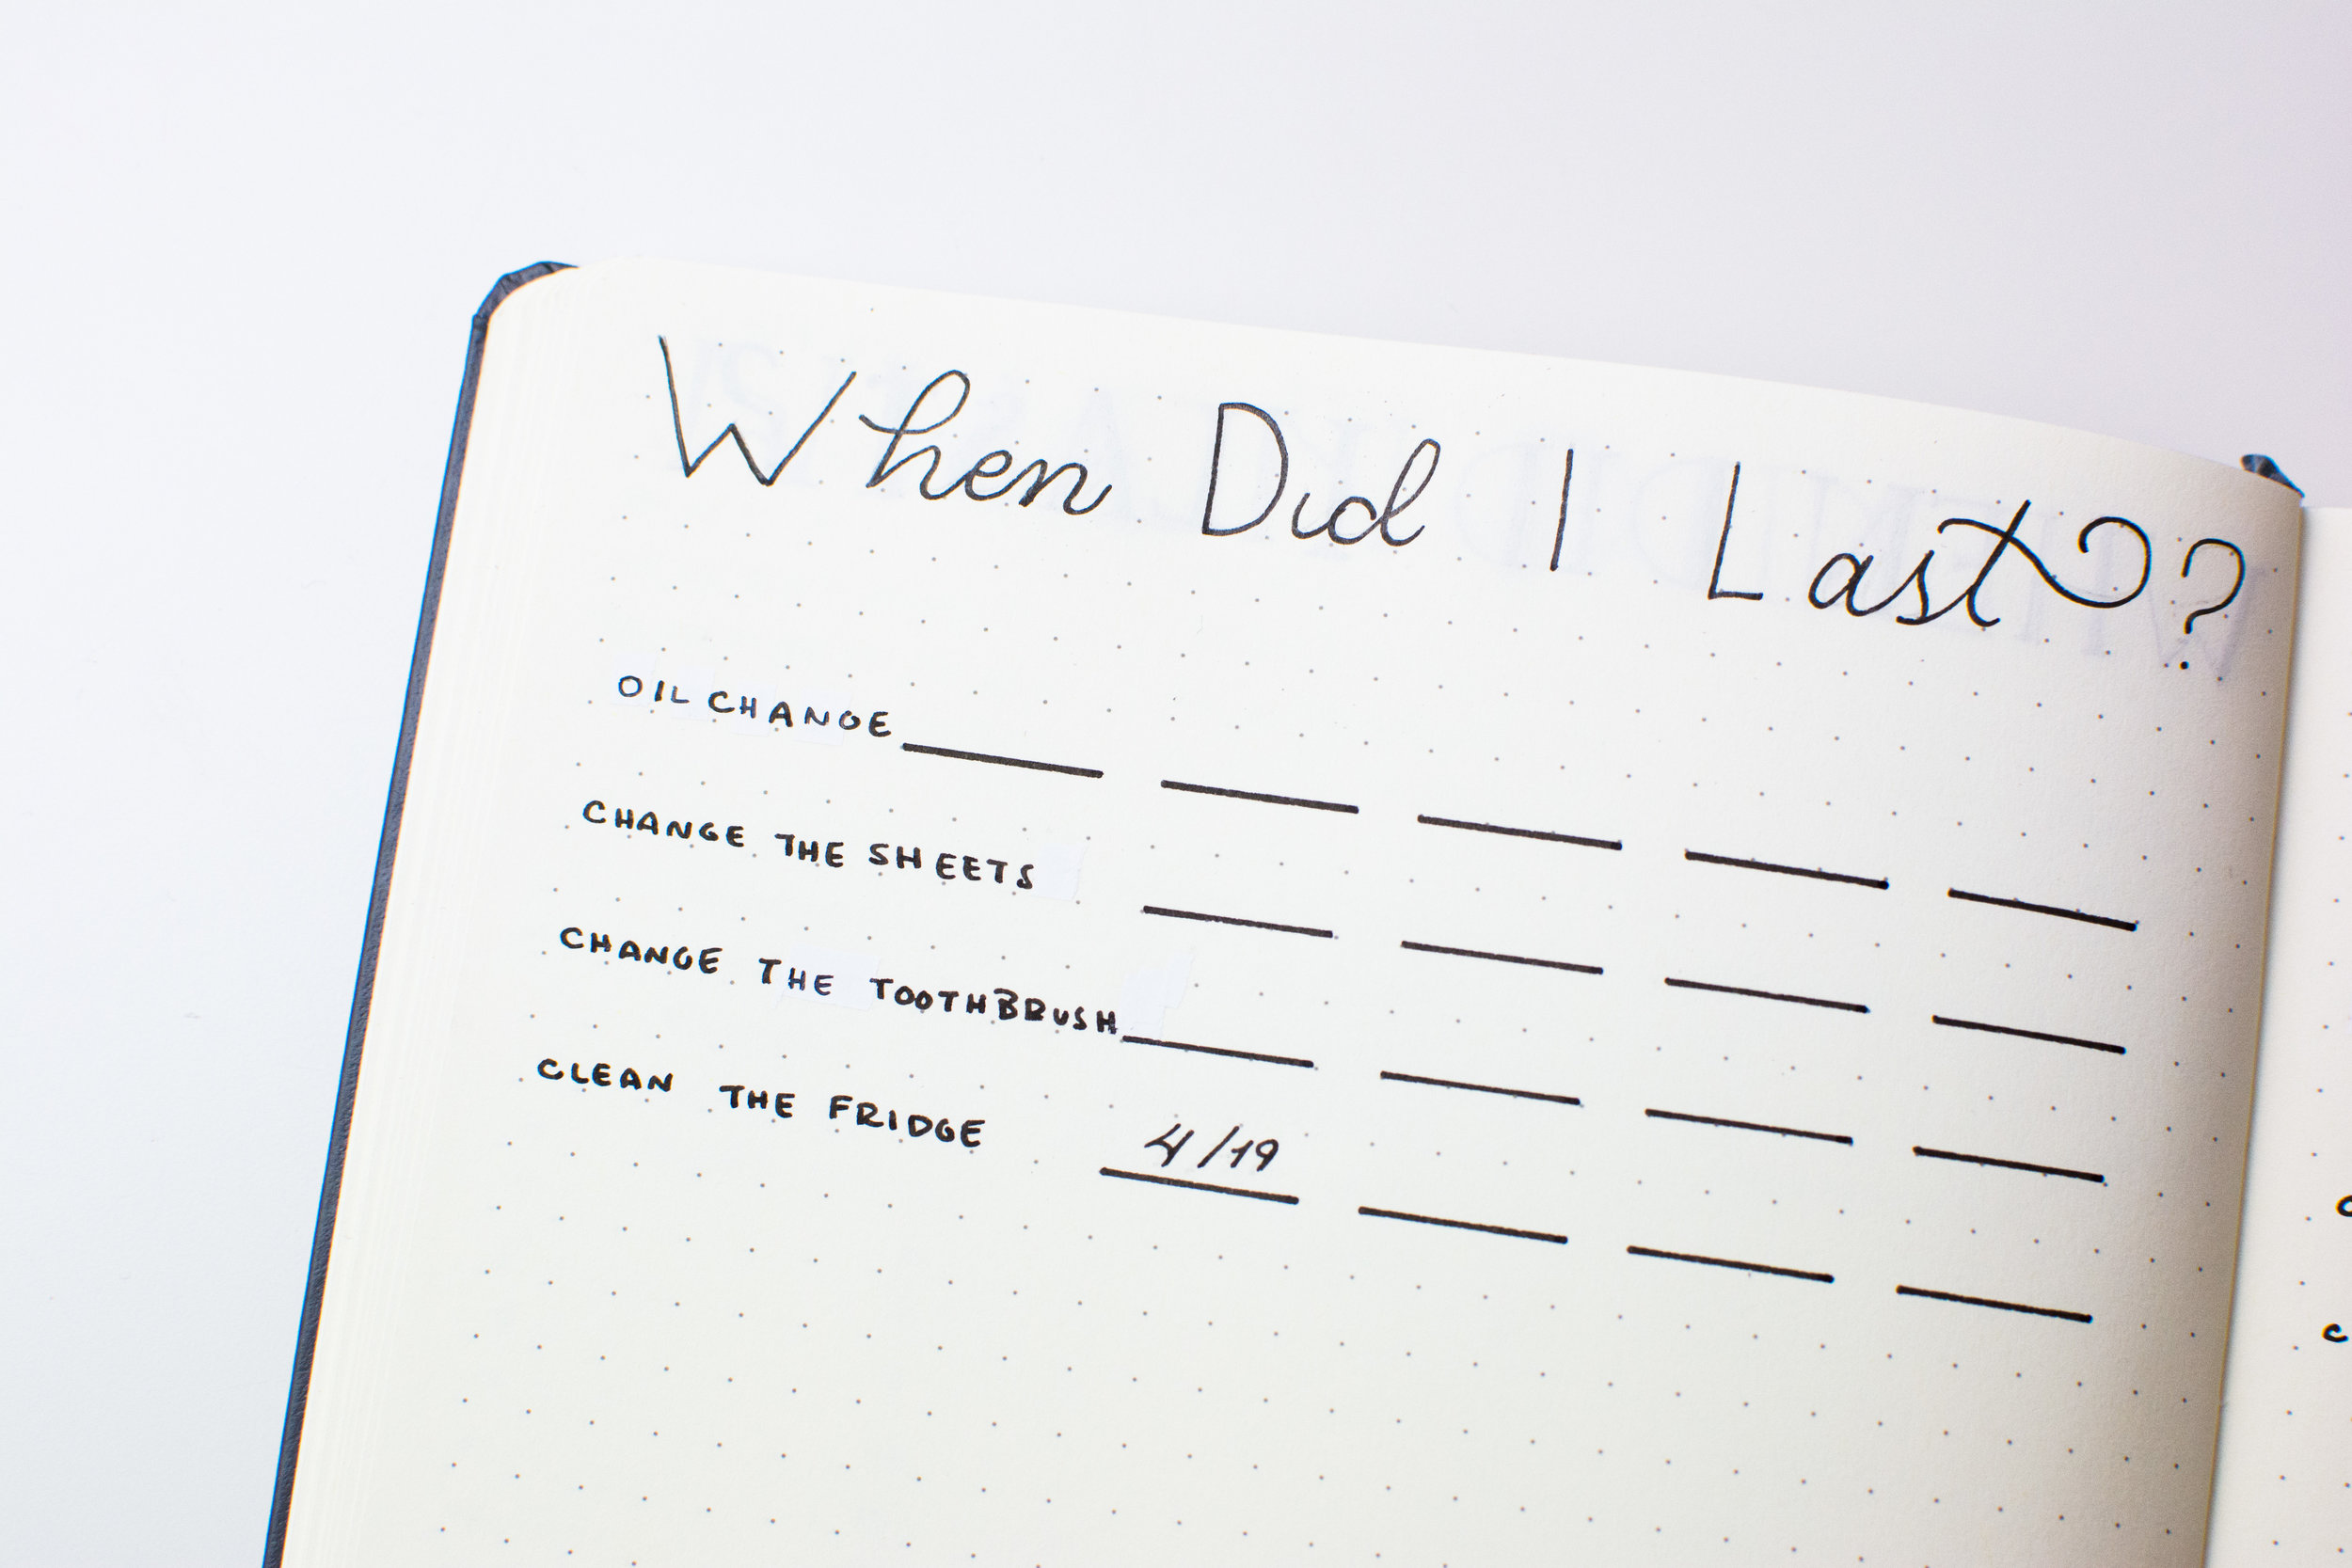 The When Did I Last Log will help you keep track of the last time you did something